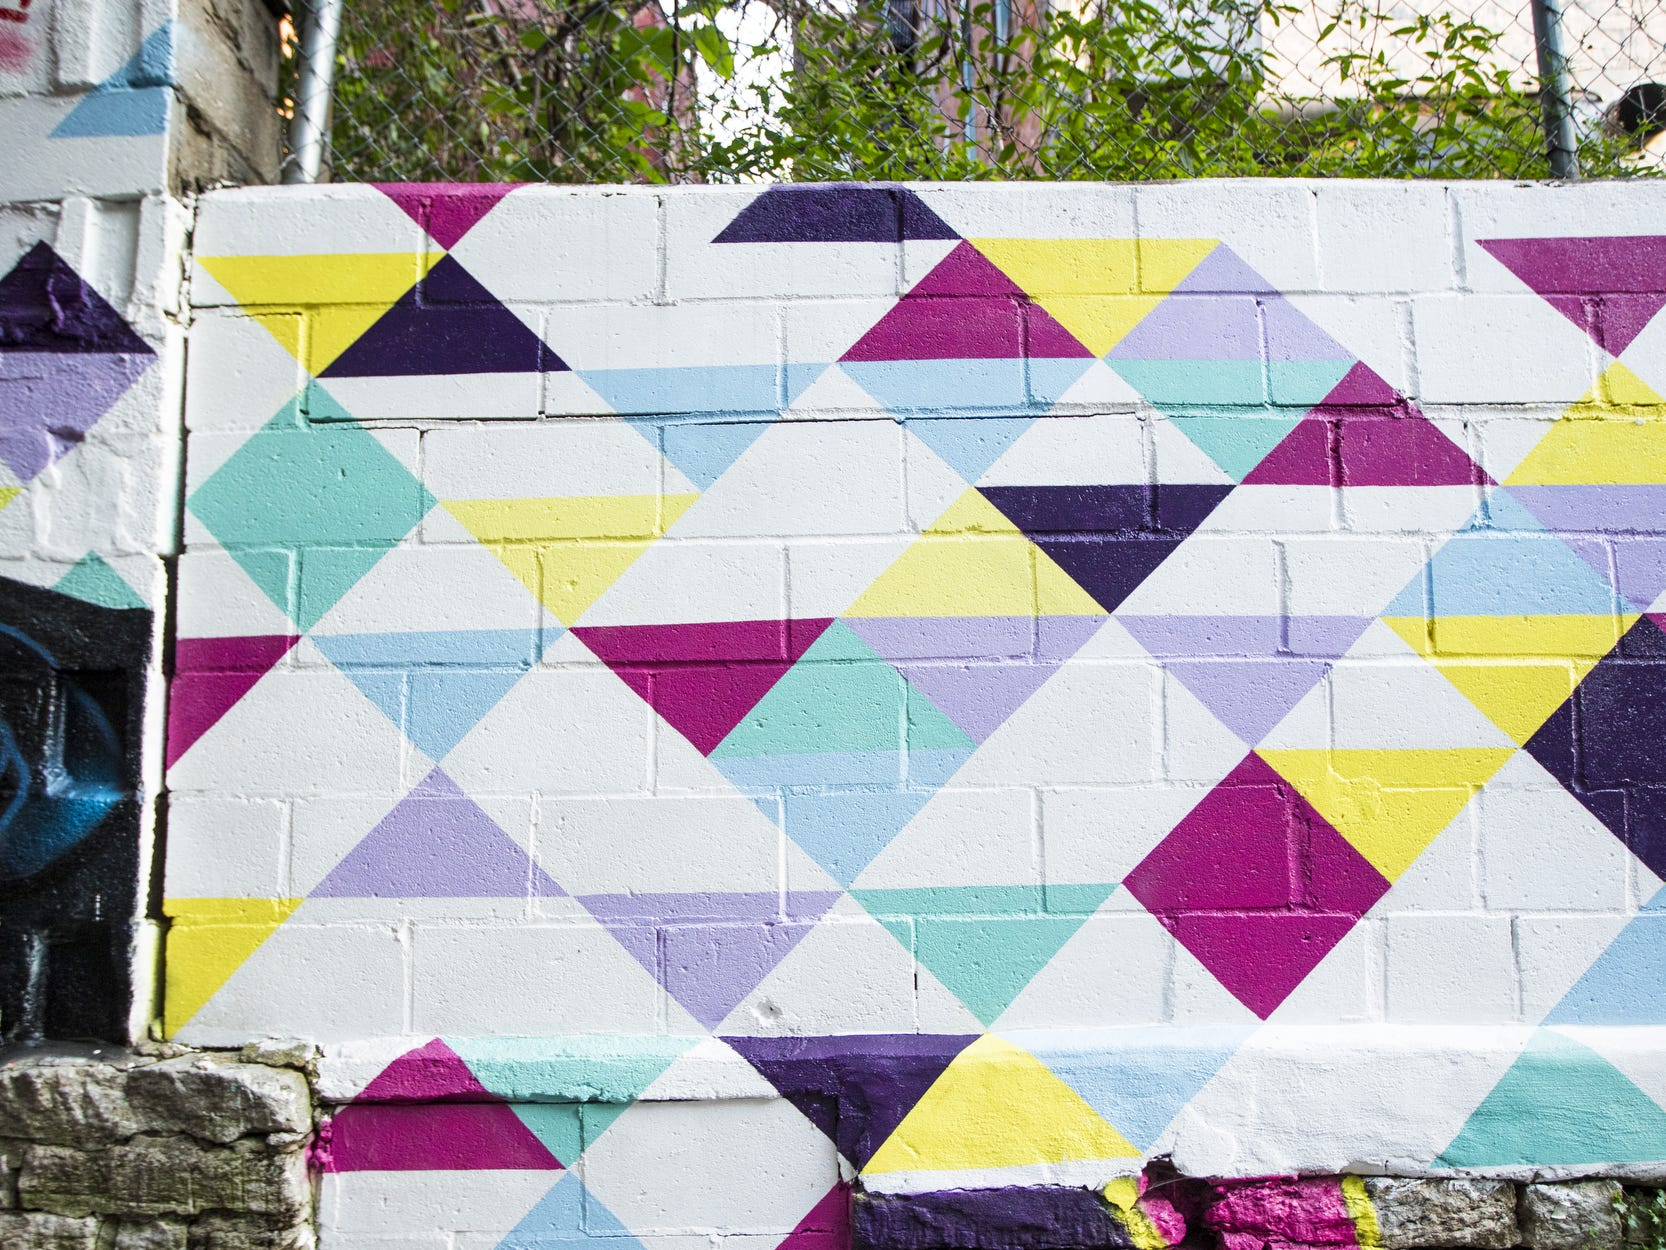 Wednesday, September 19, 2018: ÒTriforceÓ designed by LK MNDD is featured in Bolivar Alley in Pendleton as part of New Lines Alleyway Murals: Phase II by ArtWorks.